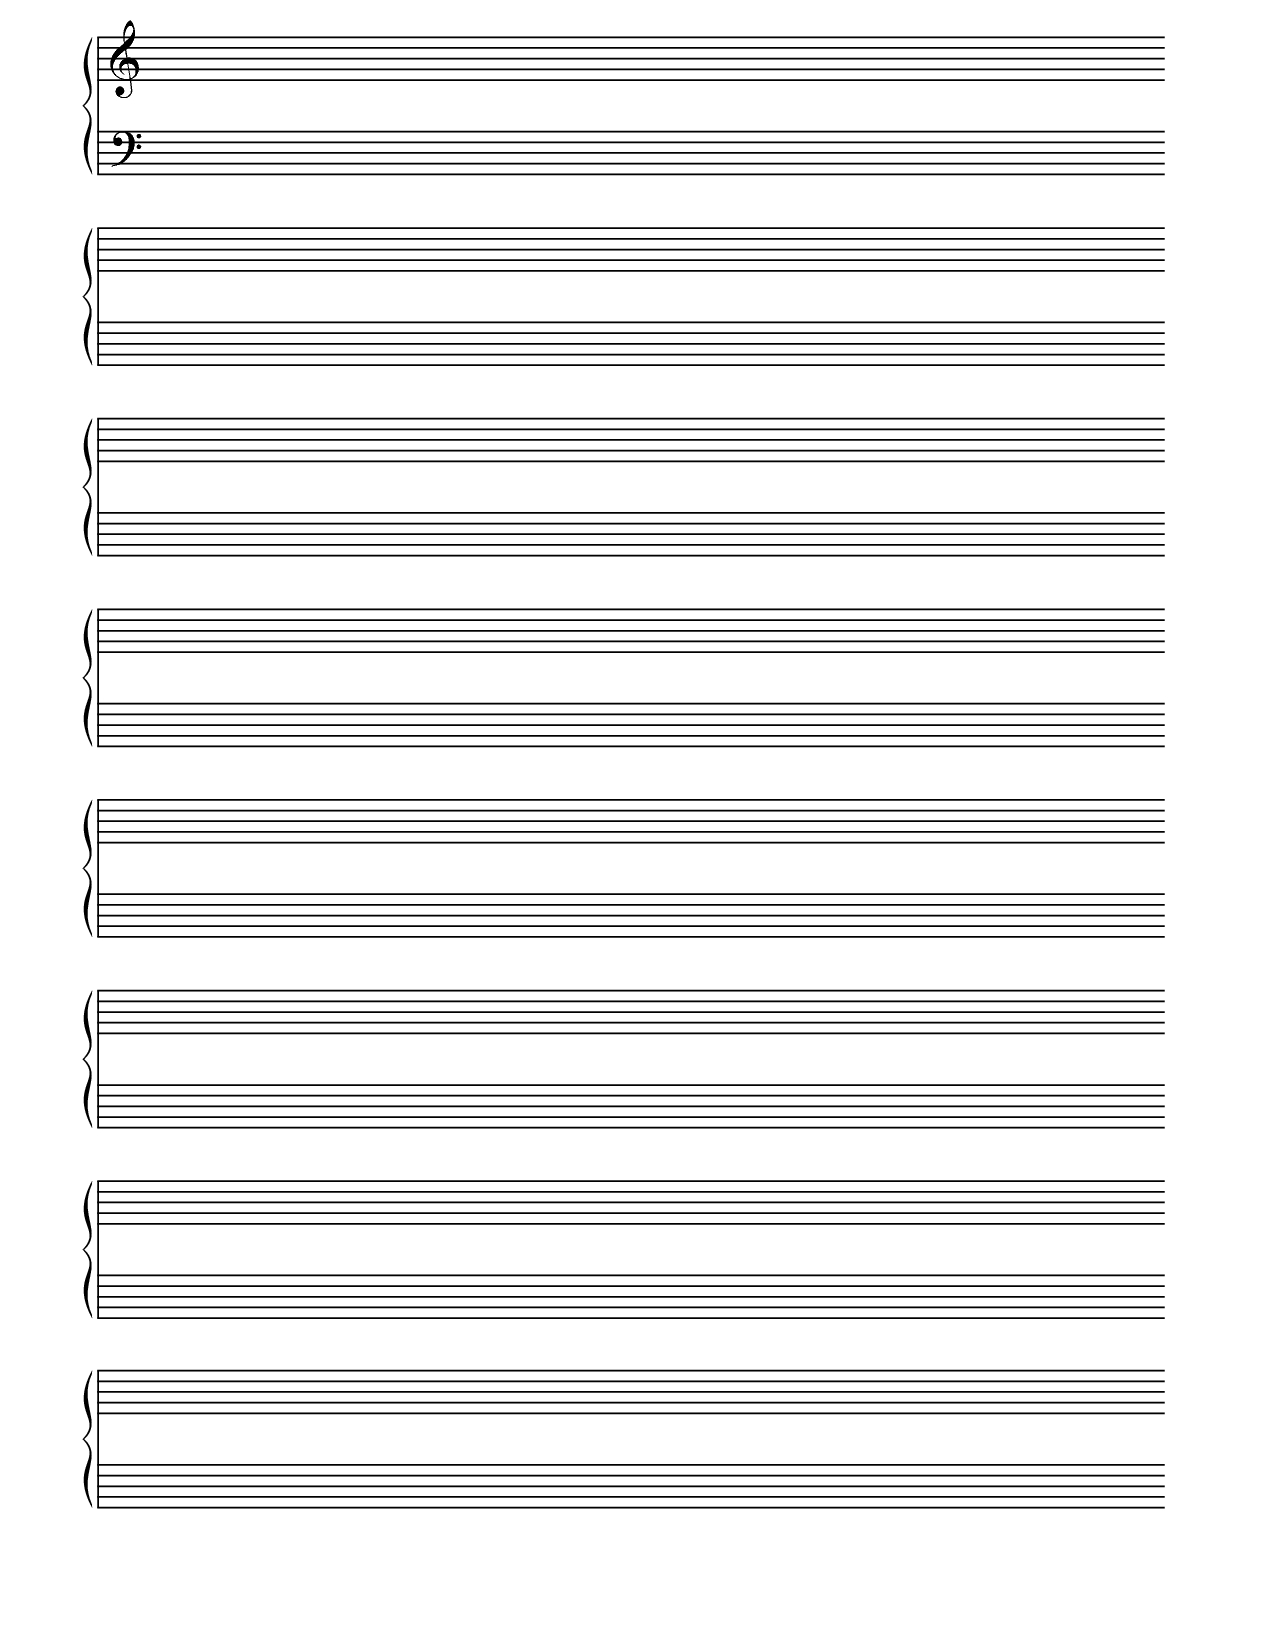 Printable Blank Piano Sheet Music Paper | Print In 2019 | Pinterest - Free Printable Staff Paper Blank Sheet Music Net